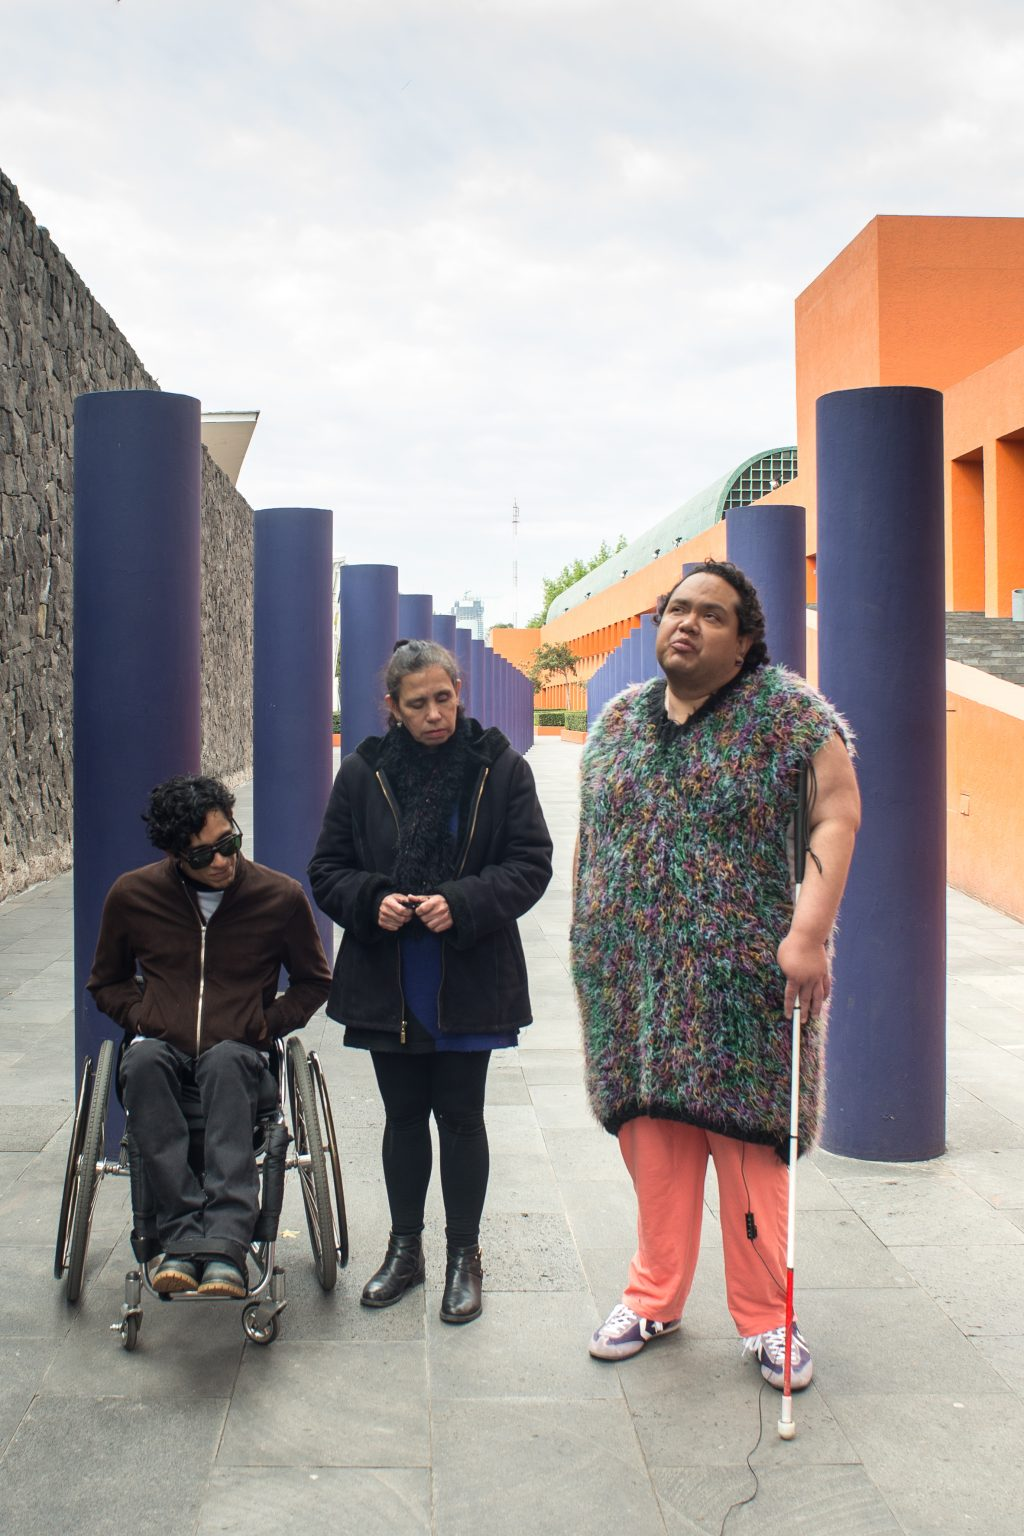 Photo of Edgar Lacolz, Maricarmen Graue, and Pedro Miranda at CENART looking pensive between several cylindrical blue pillars. Edgar is seated in a wheelchair, Maricarmen is standing with no mobility device, and Pedro is on the right holding a white cane.